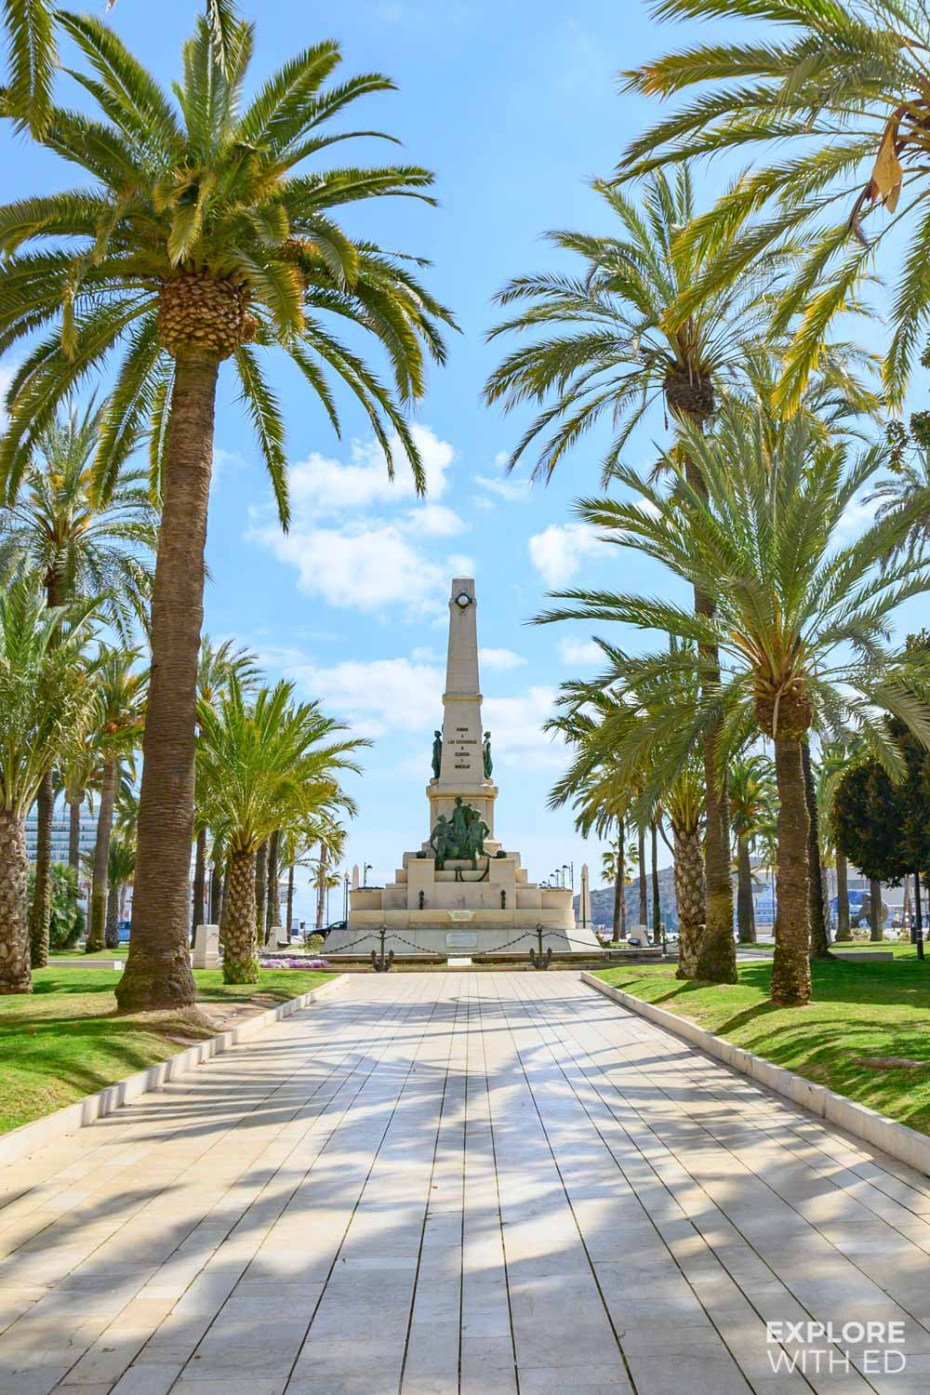 Memorial Monument in Cartagena Spain surrounded by palm trees